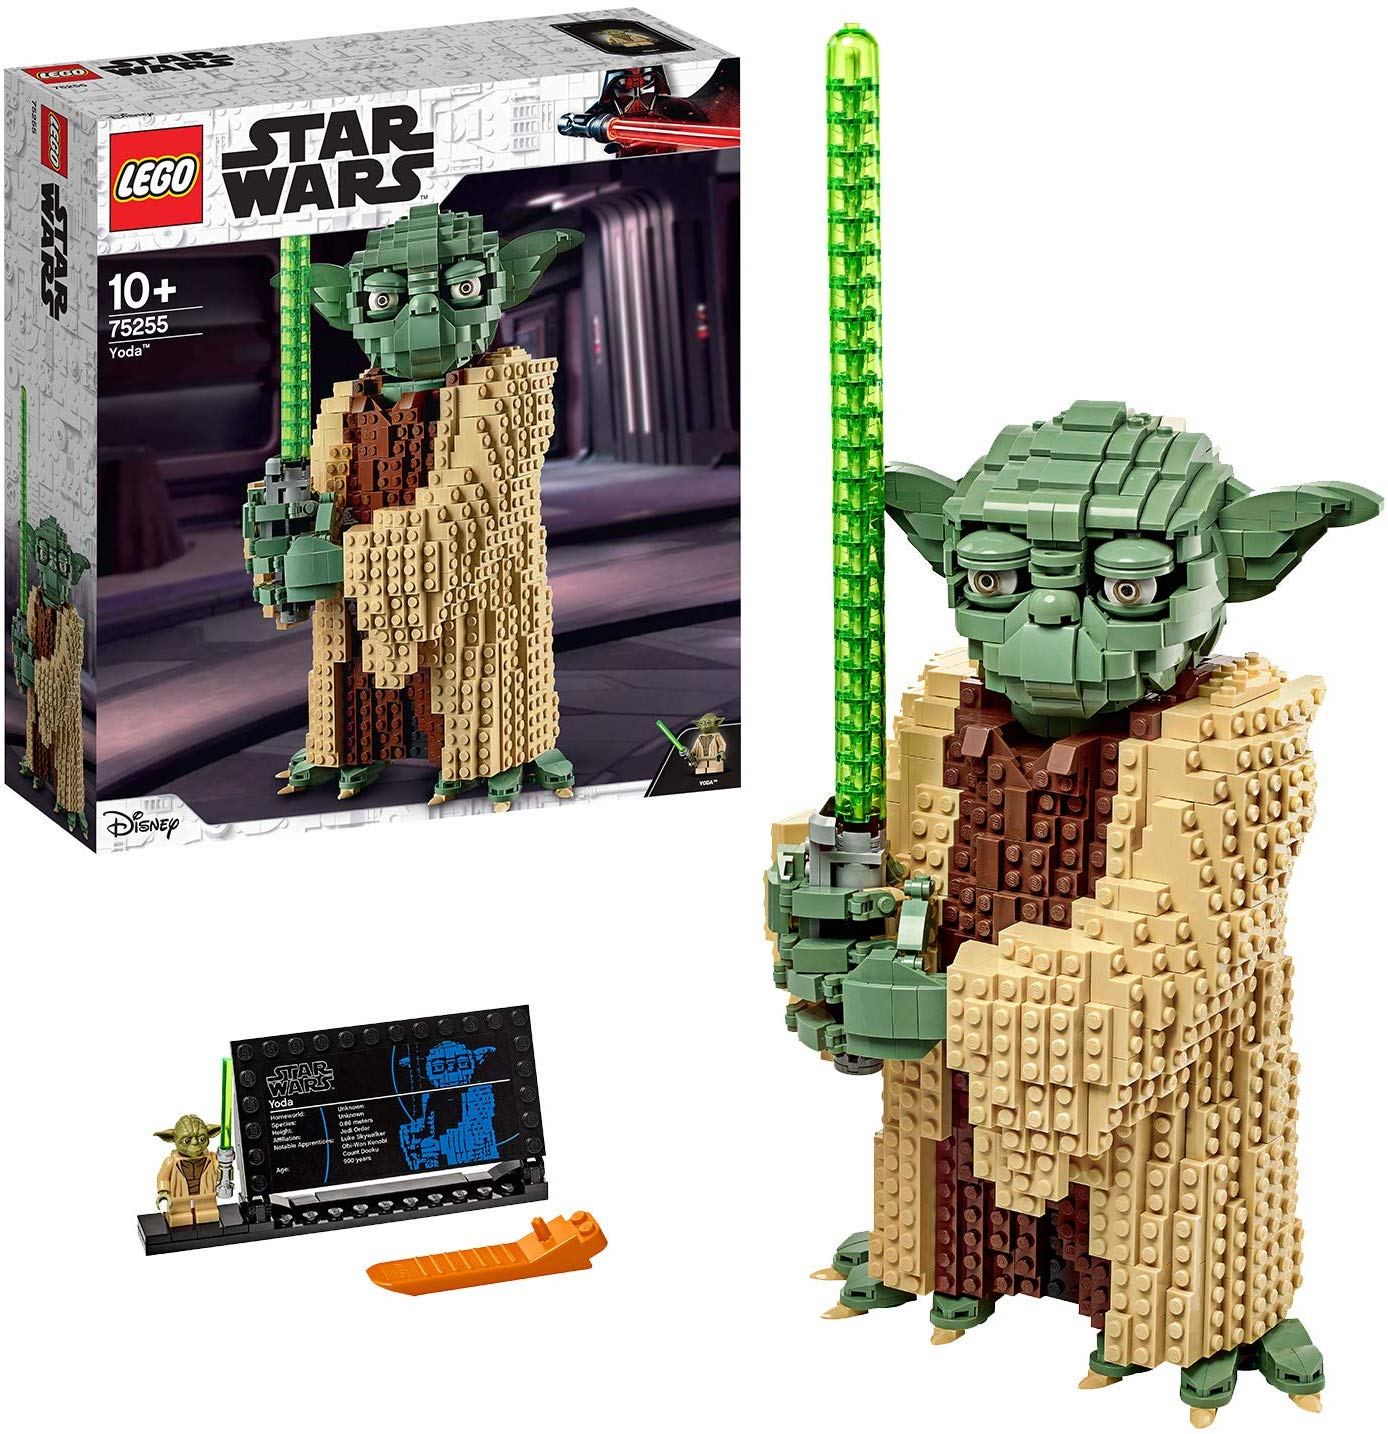 Save £20.5 on LEGO Star Wars Yoda Construction Set, Collectable Model with Display Stand